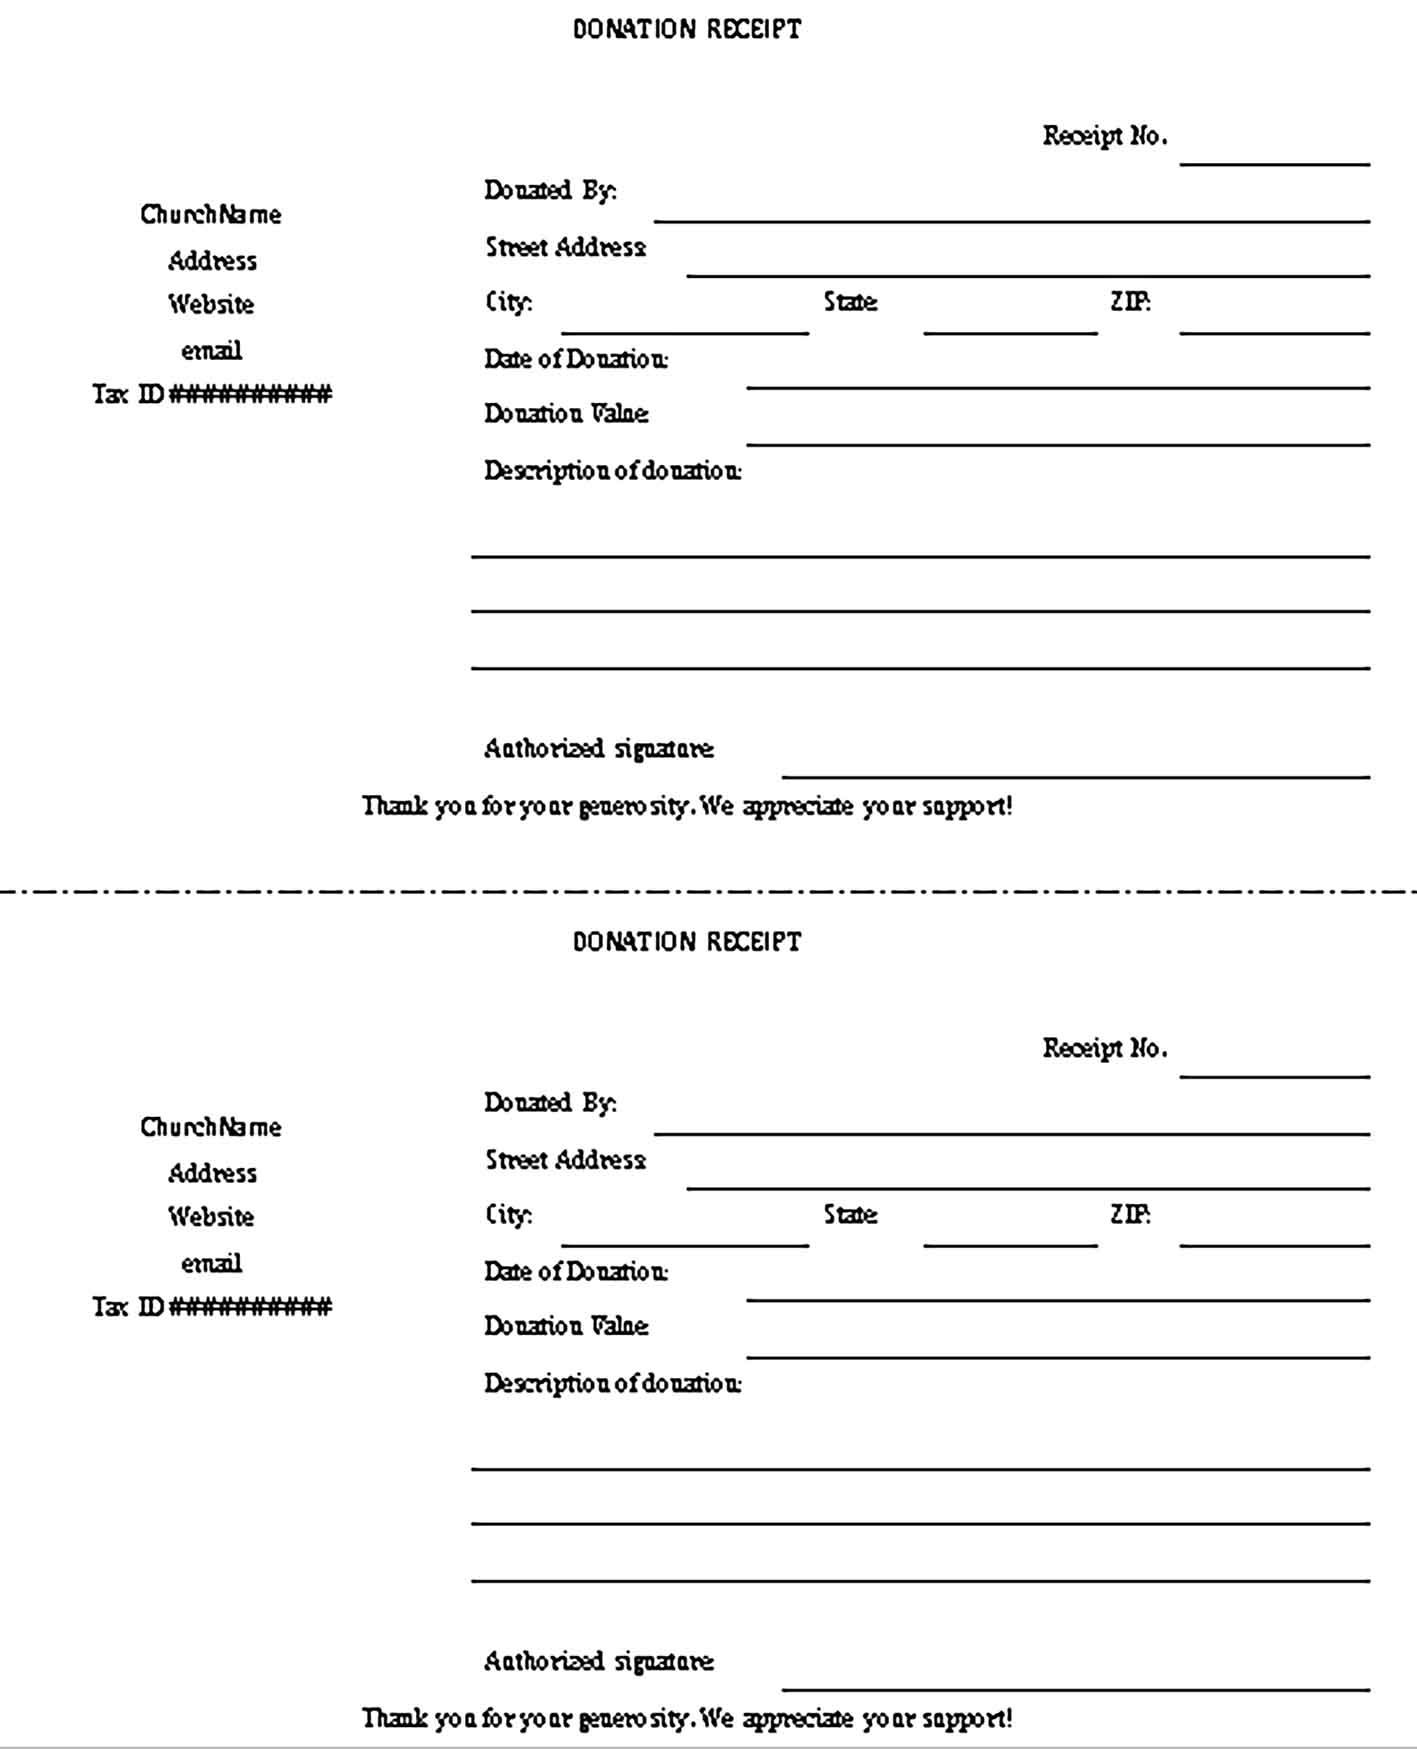 Donation Receipt Template Sample Receipt Template Donation Form Non Profit Donations Donation receipts for tax purposes